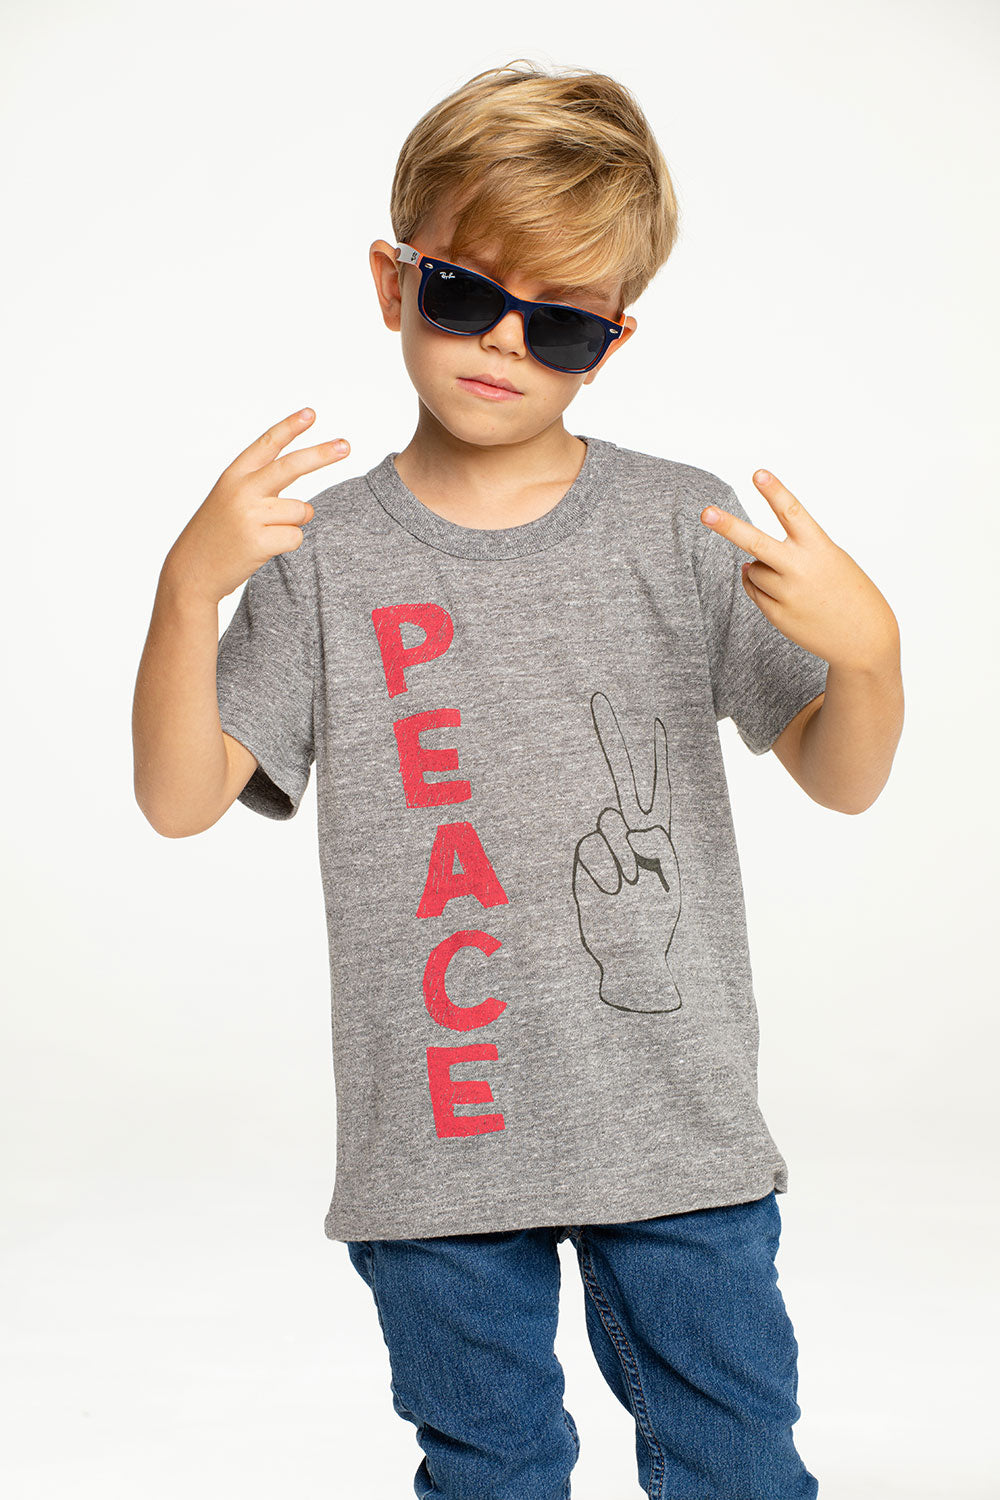 Peace Fingers BOYS - chaserbrand